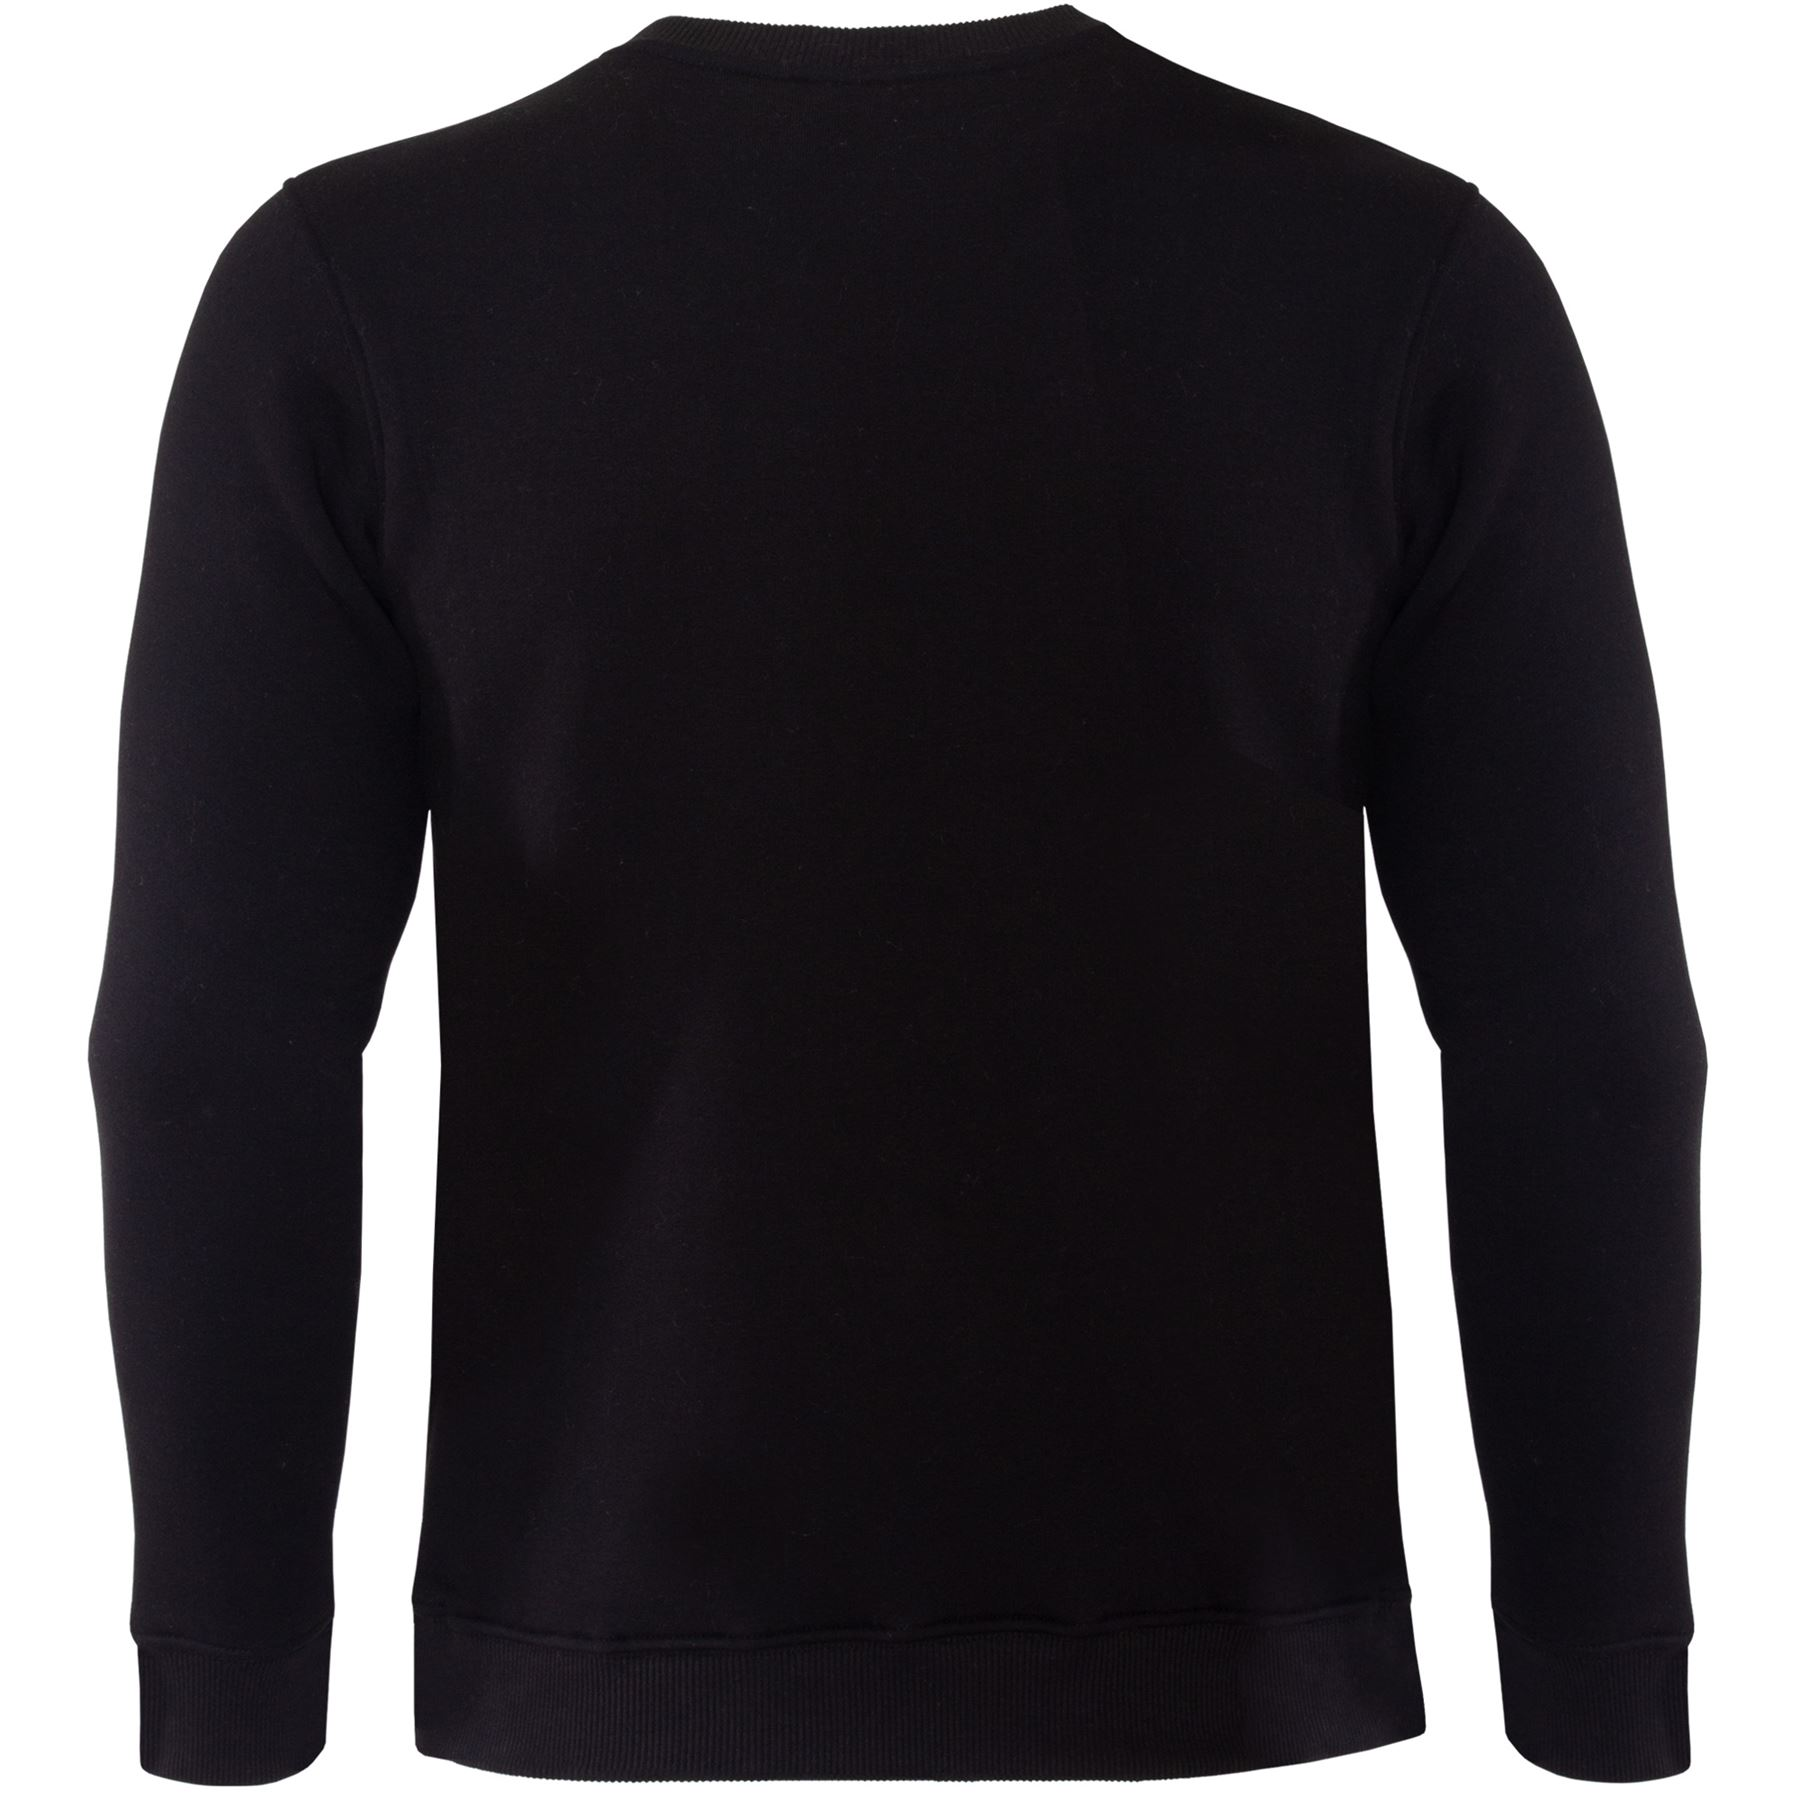 Mens-Crew-Neck-Sweatshirt-Jumper-Casual-Plain-Jersey-Fleece-Sweat-Top-Pullover thumbnail 5